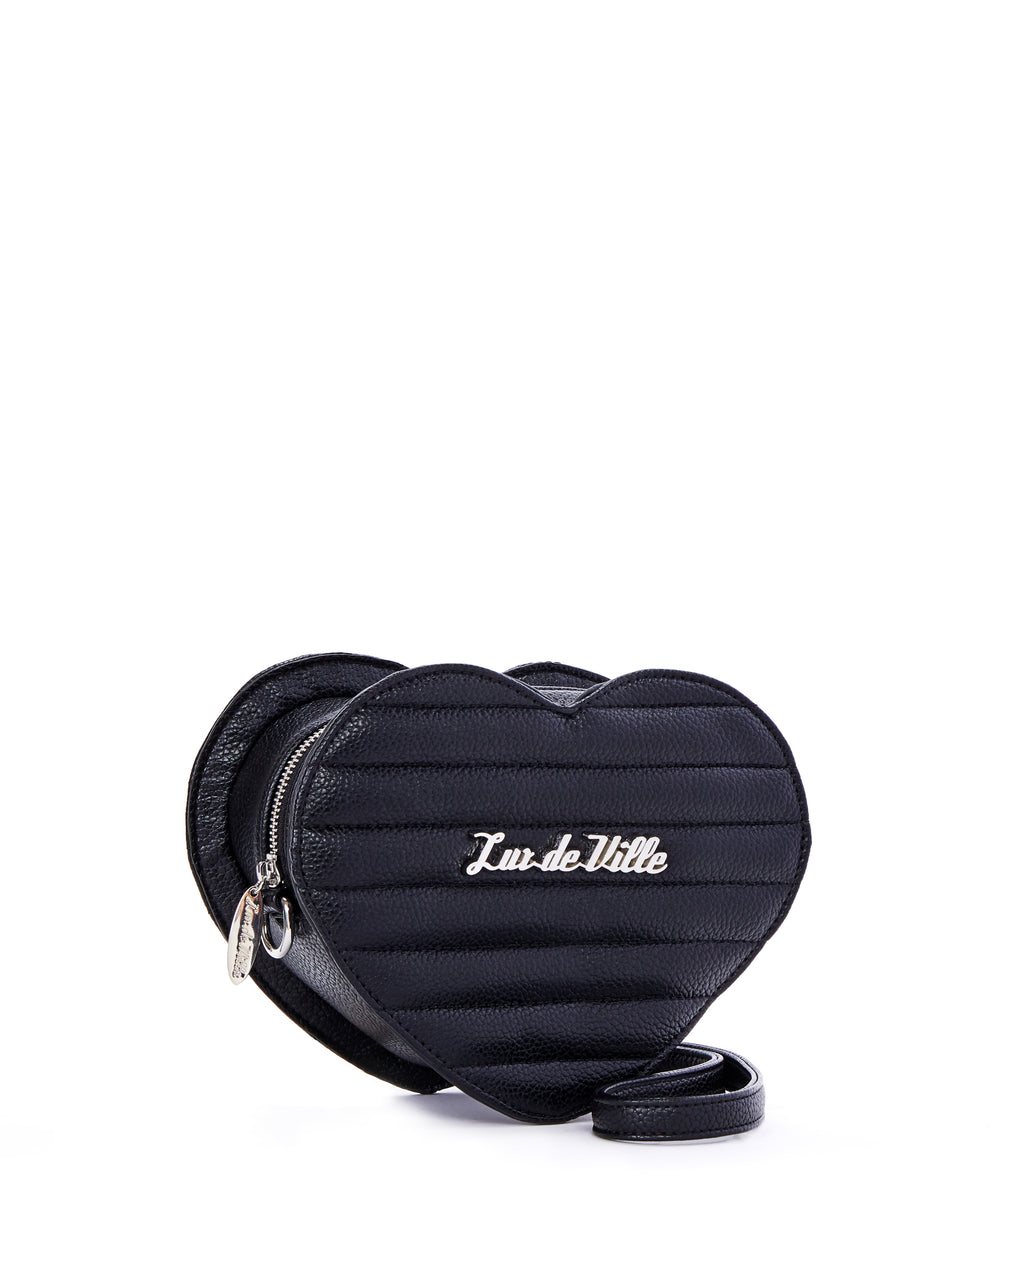 Mini Love You  Handbag Black Matte - Limited Edition - Mini Atomic Totes